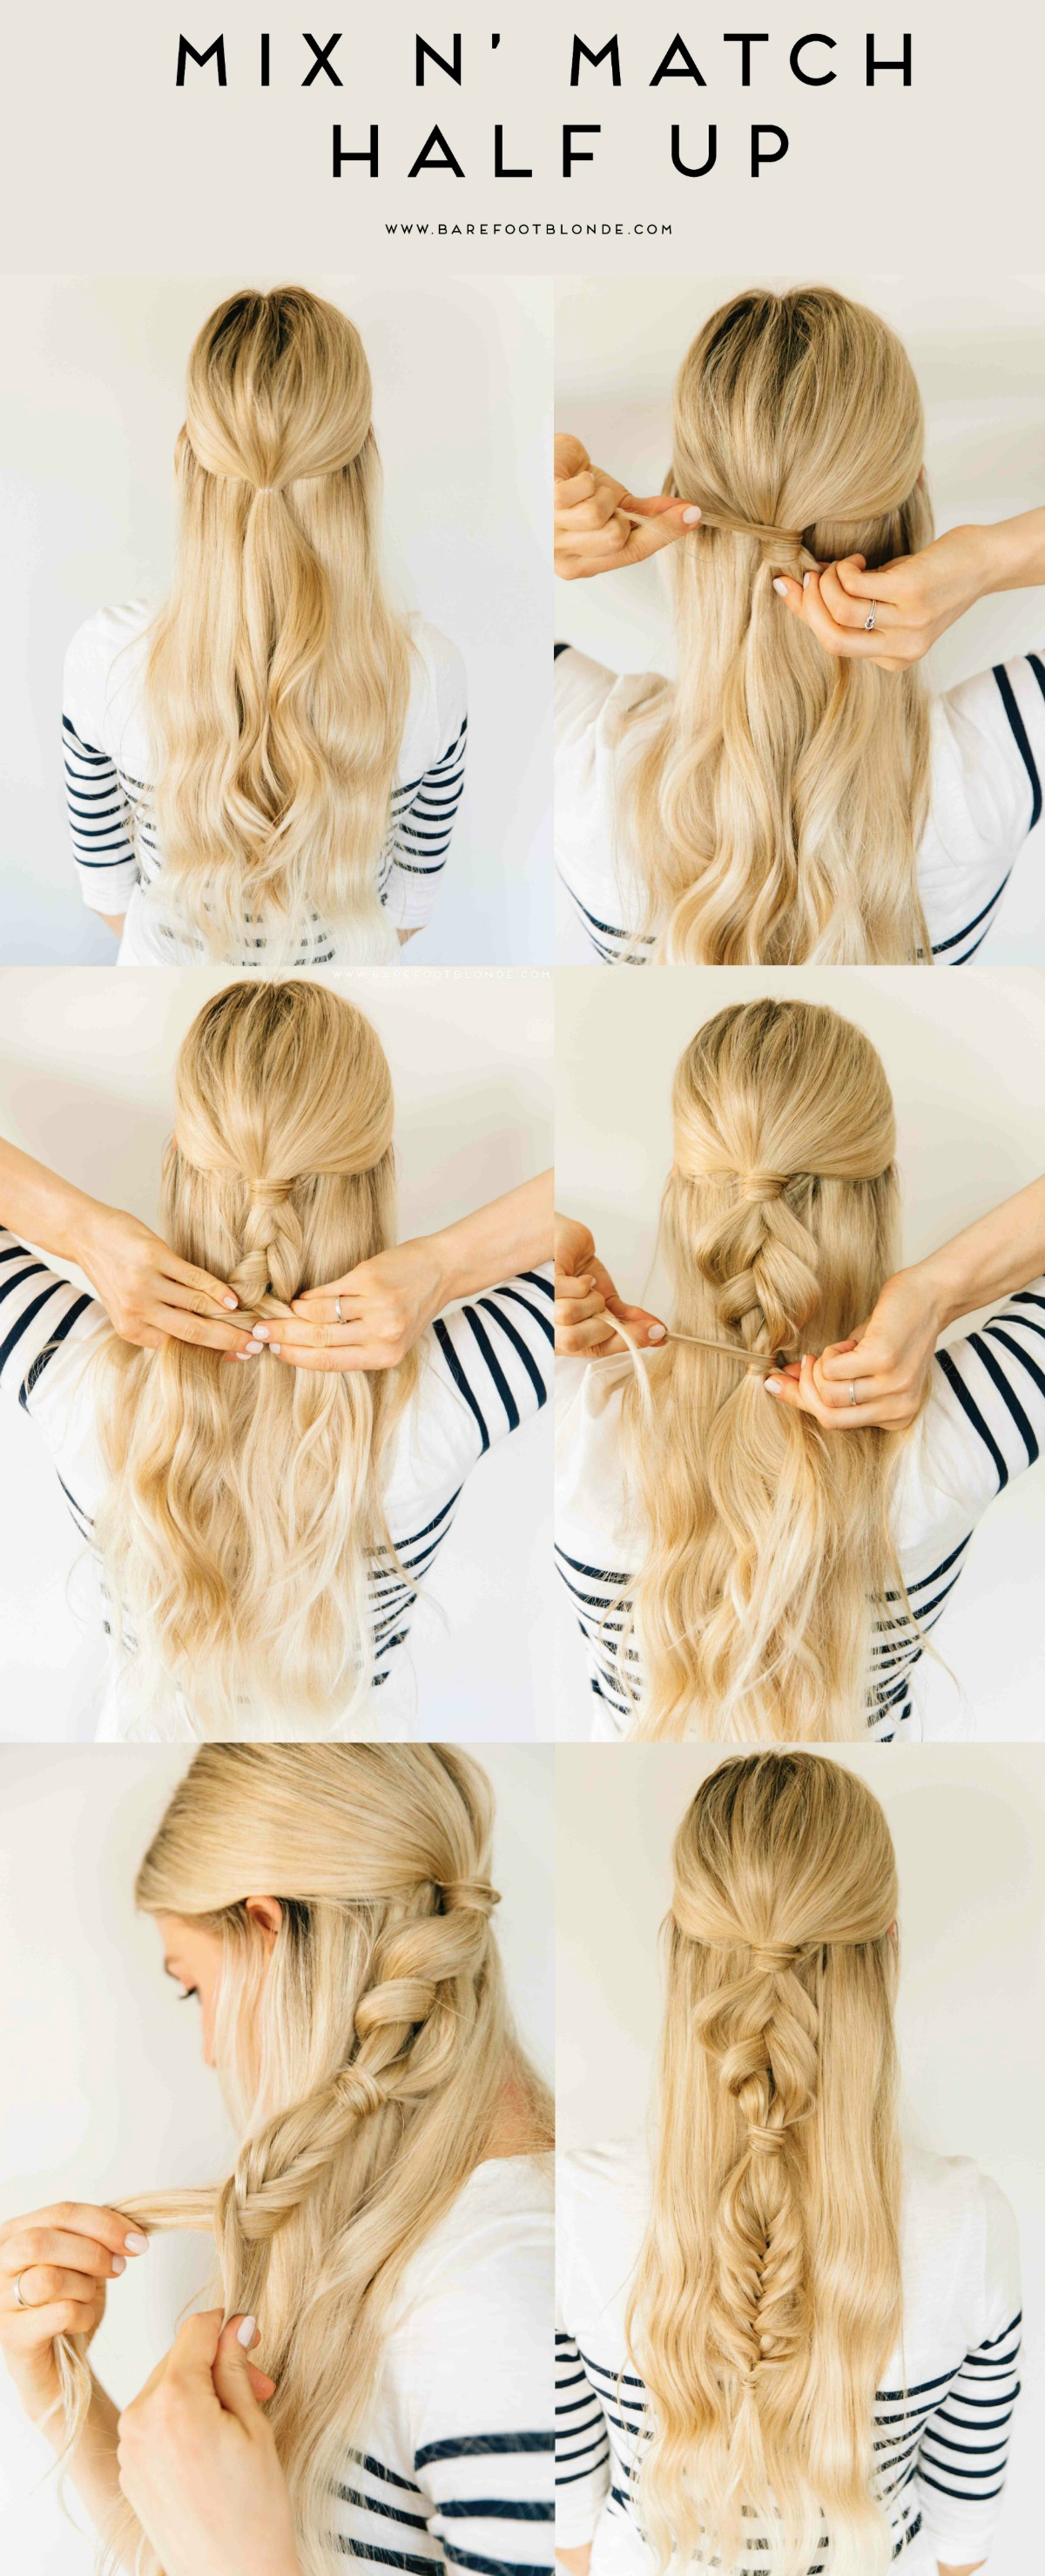 Barefoot Blonde Mix N Match Half Up Tutorial